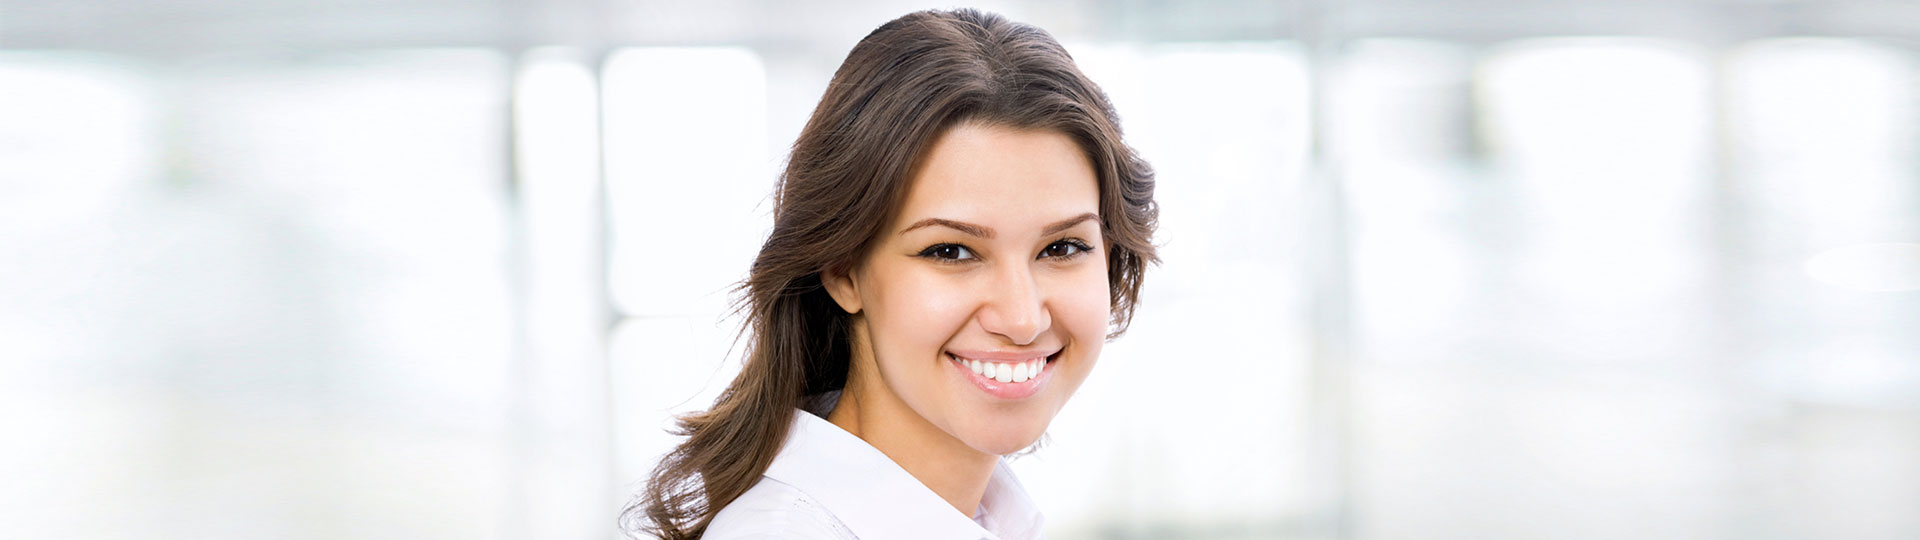 Benefits of Single-Tooth Dental Implants